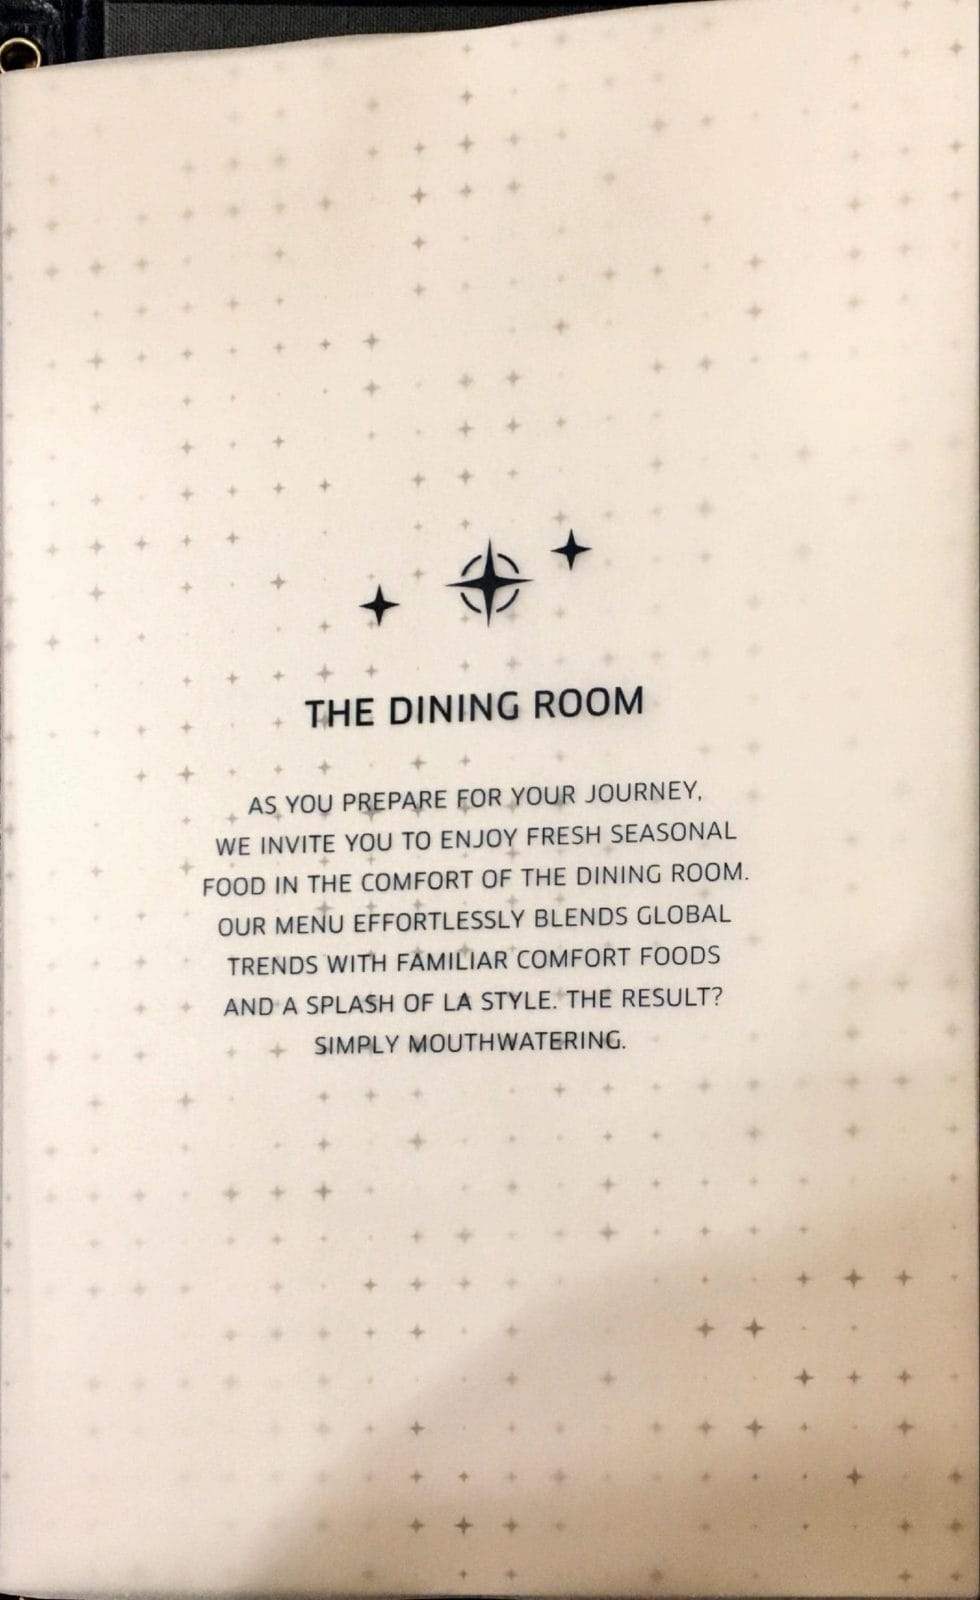 United Polaris Lounge LAX - Dining Room Menü